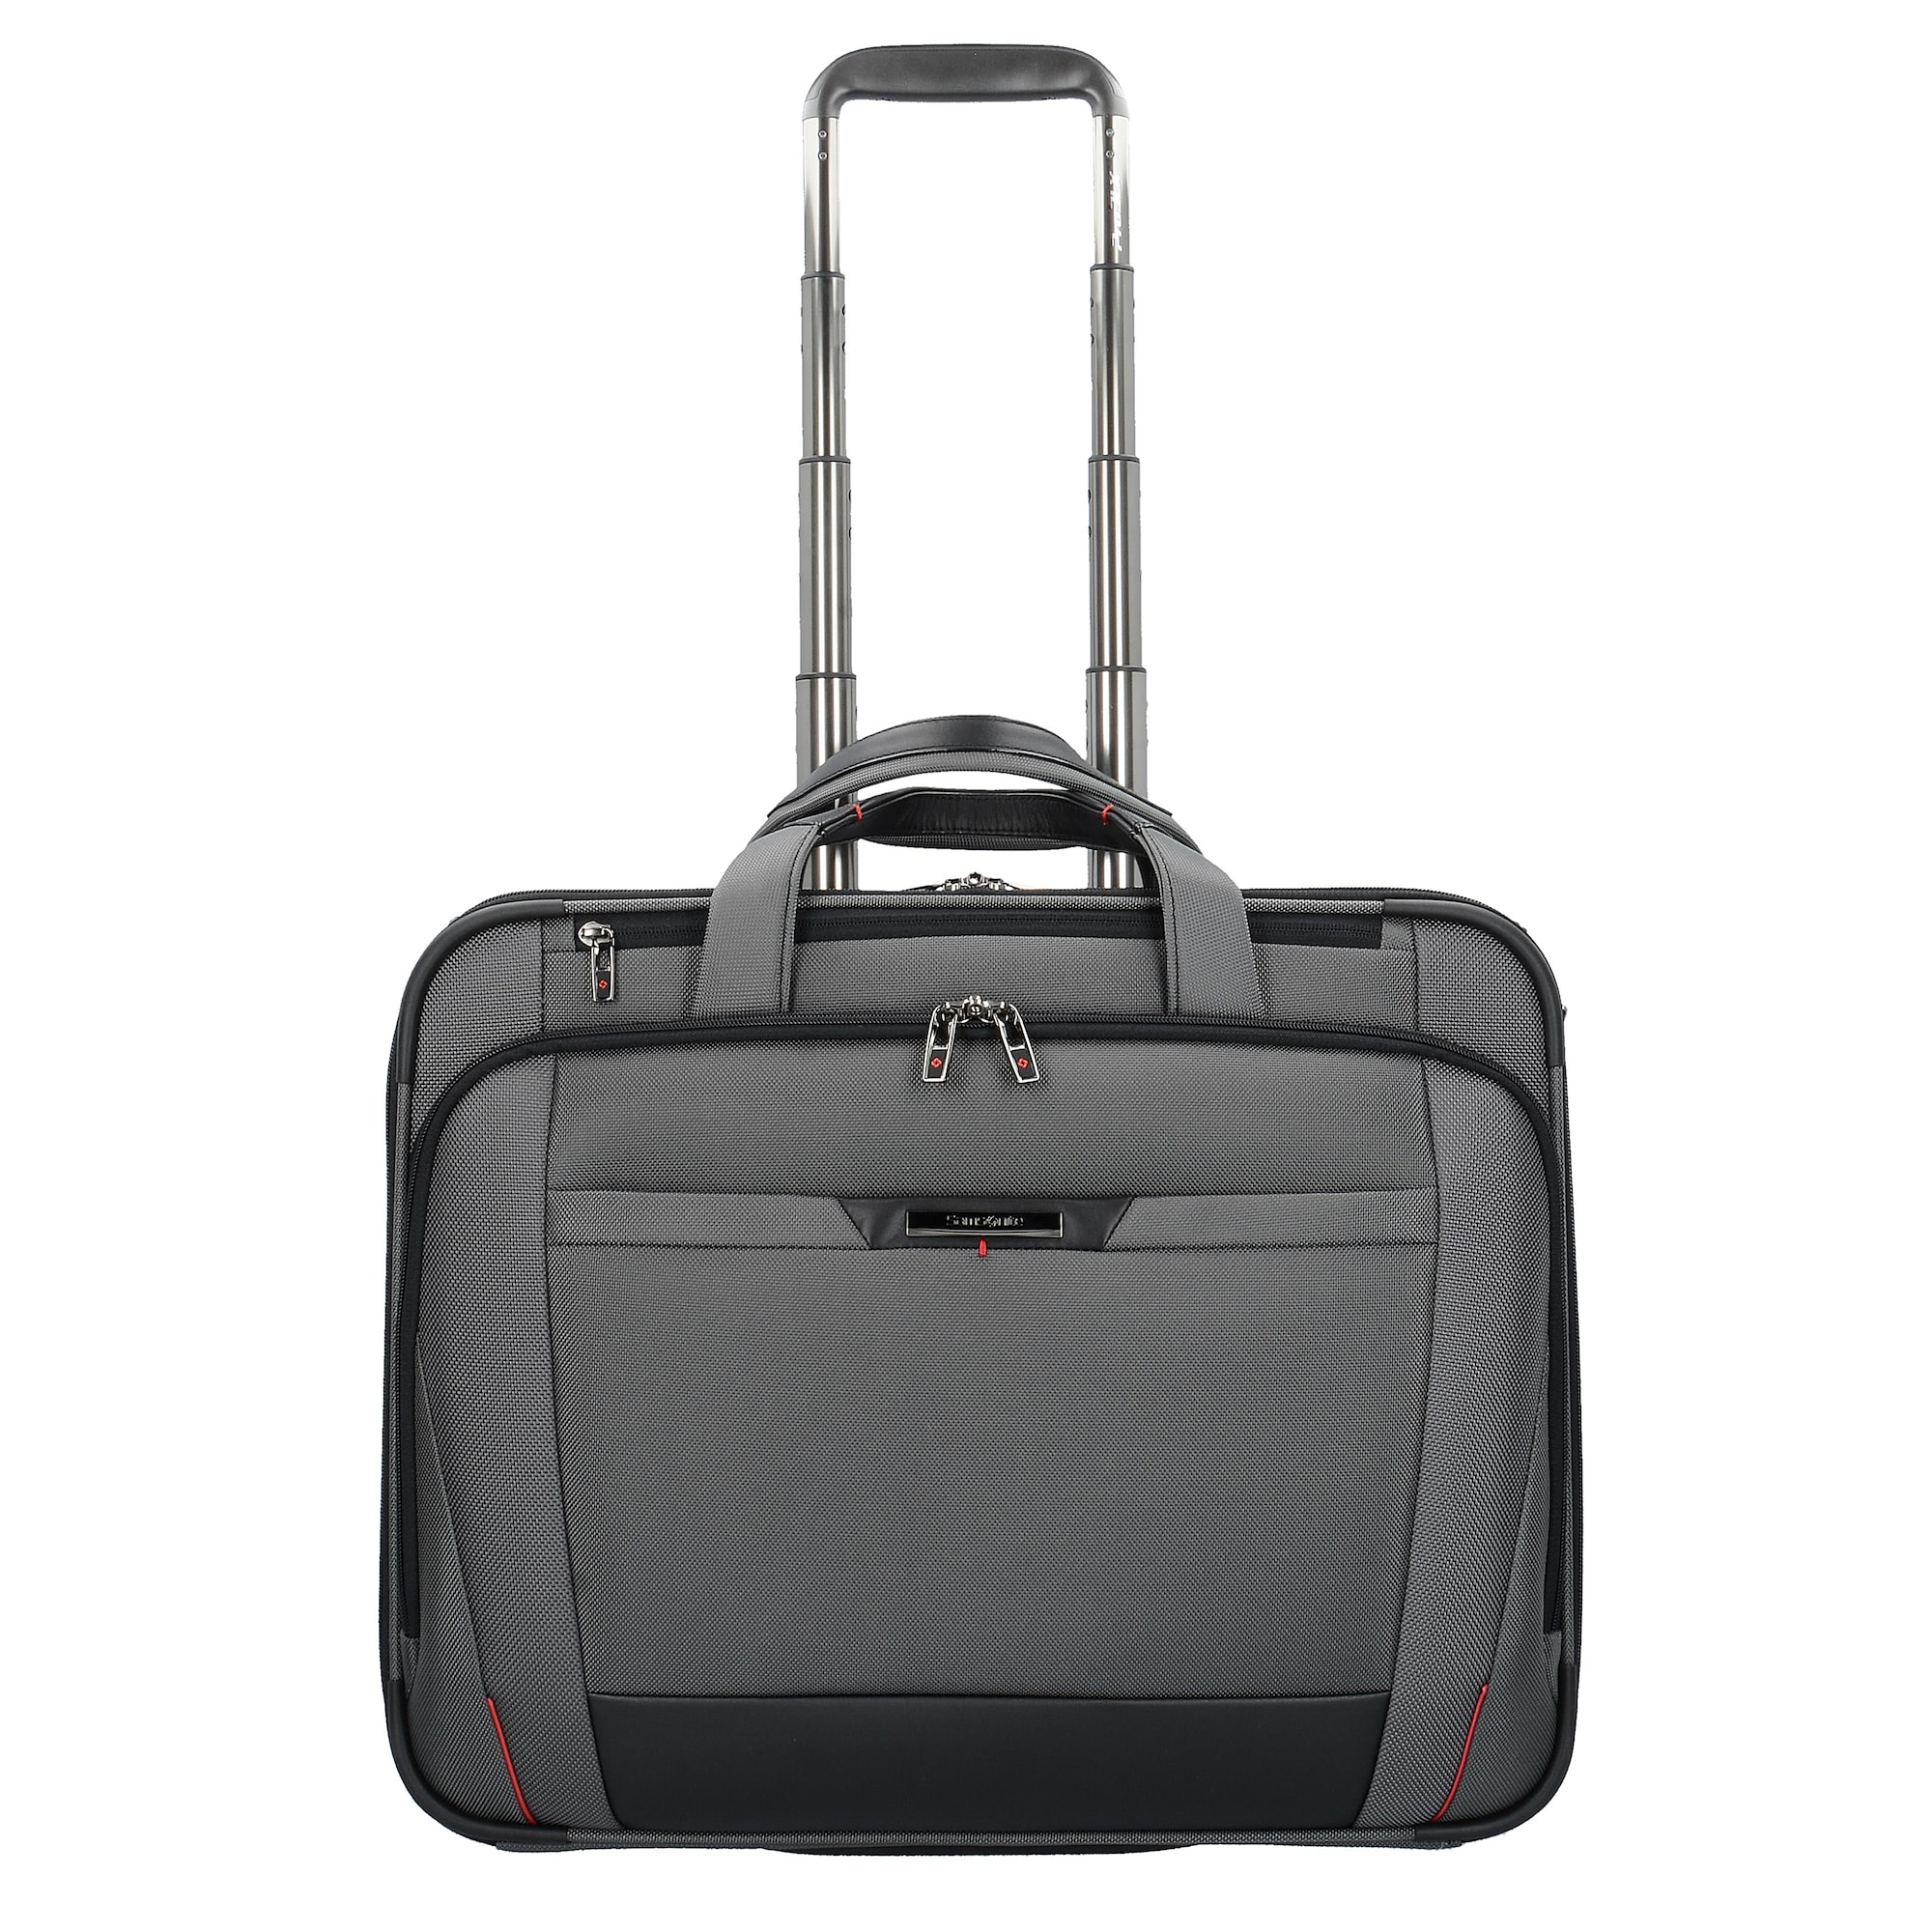 Pro-DLX 5 Upright 2-Rollen Business Trolley 48 cm Laptopfach | Taschen > Businesstaschen > Business Trolleys | Grau | Samsonite